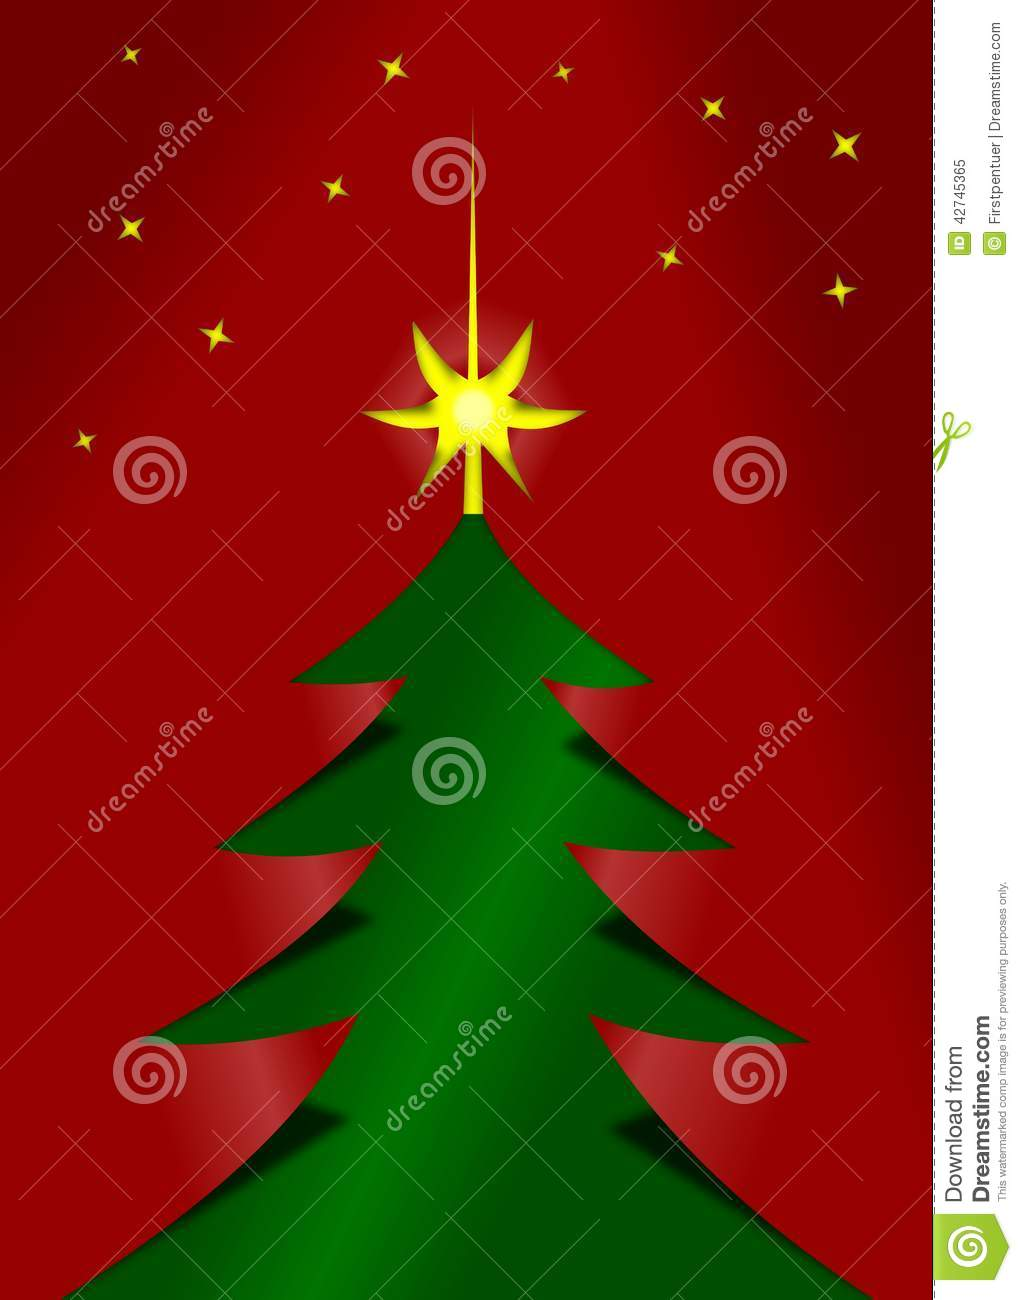 Red and green christmas tree cutted from paper stock for Red and green christmas tree